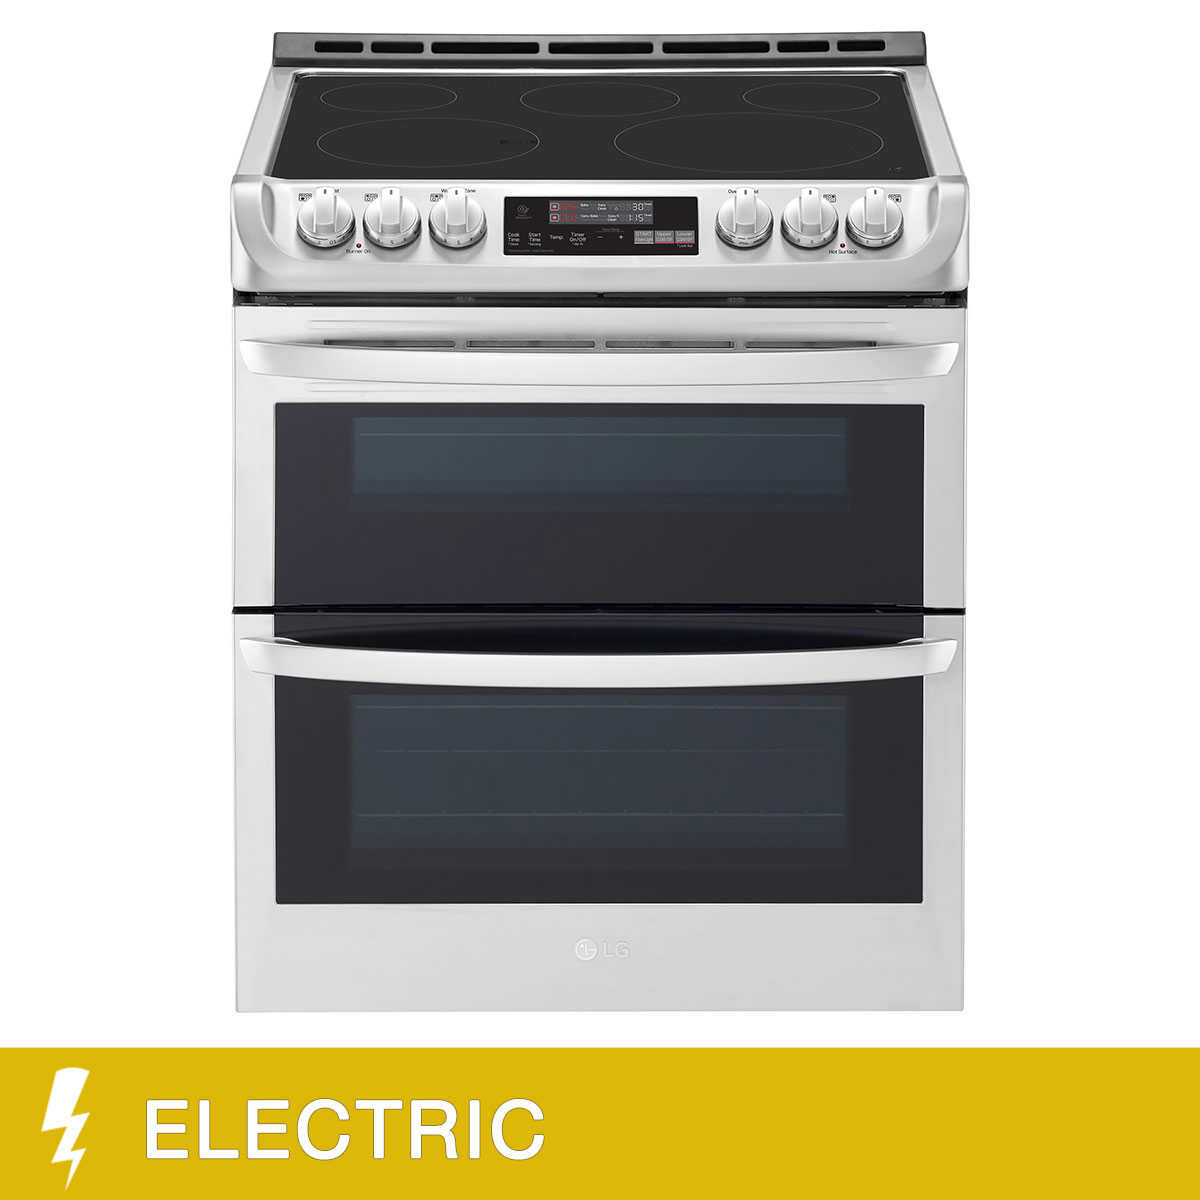 Lg 7 3cuft Wi Fi Enabled Electric Double Oven Range With Probake Convection